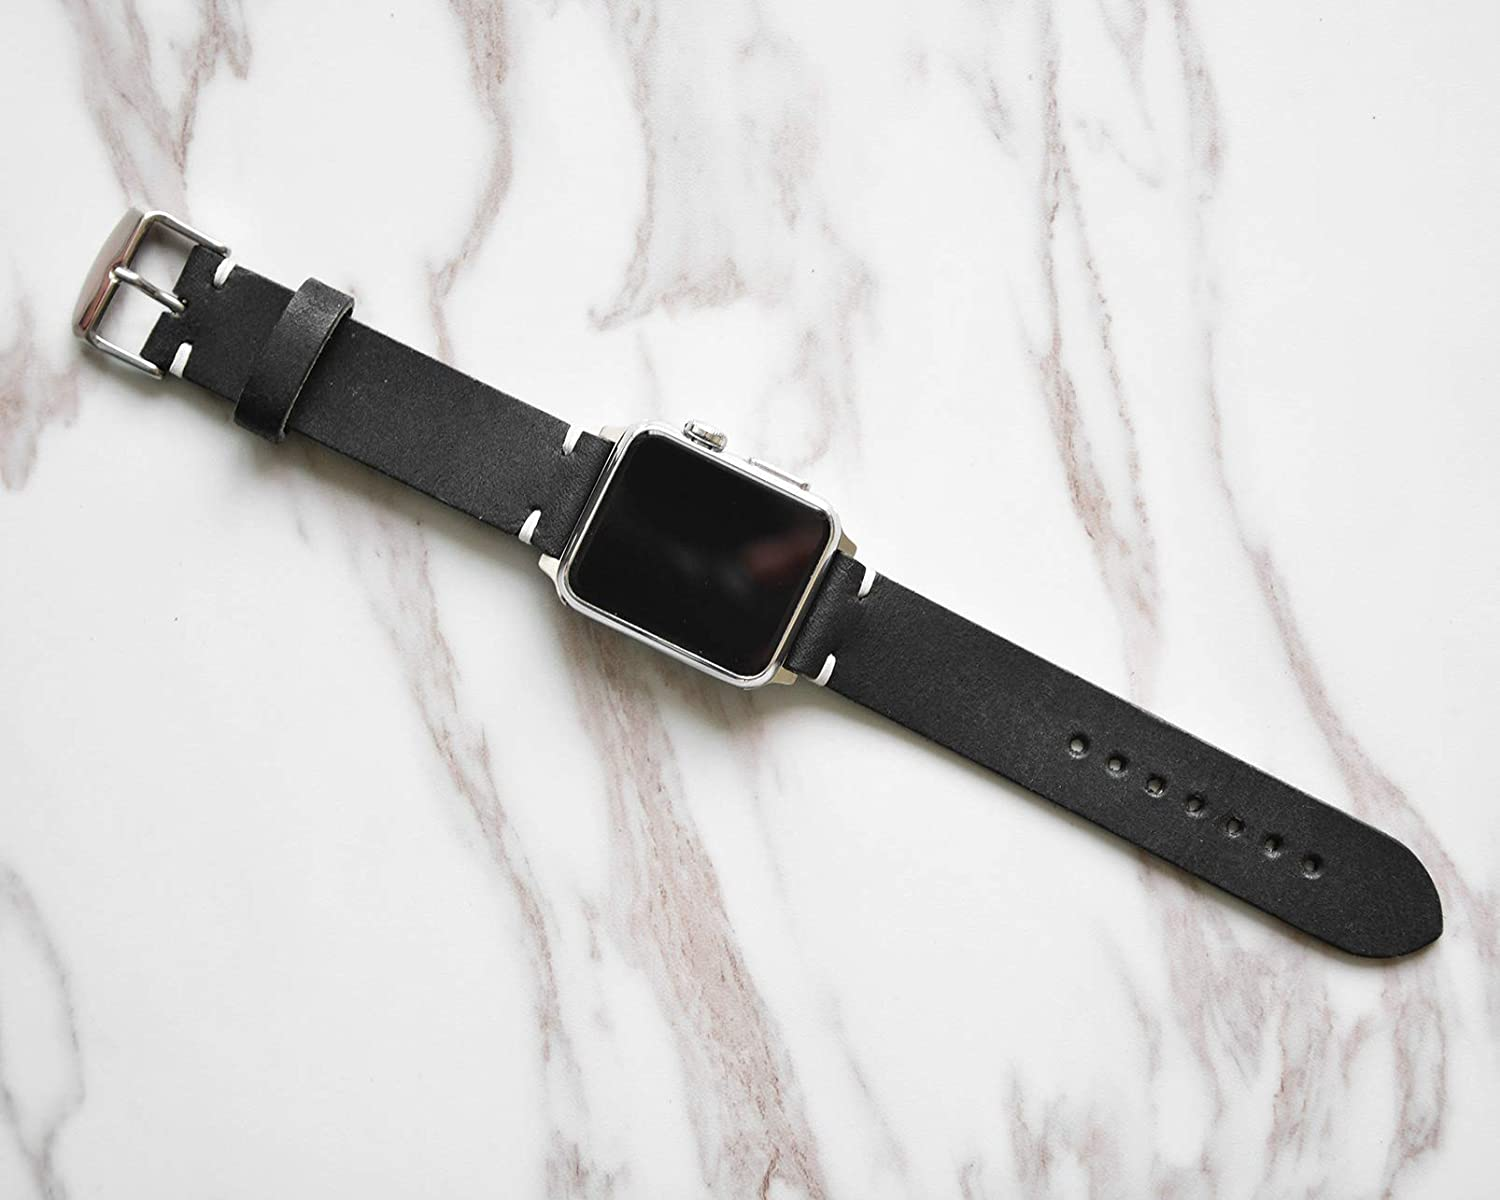 Black iWatch 4 Band 38mm 40mm 42mm 44mm Custom Distressed Genuine Leather Mens Apple Strap For Series 1 2 3